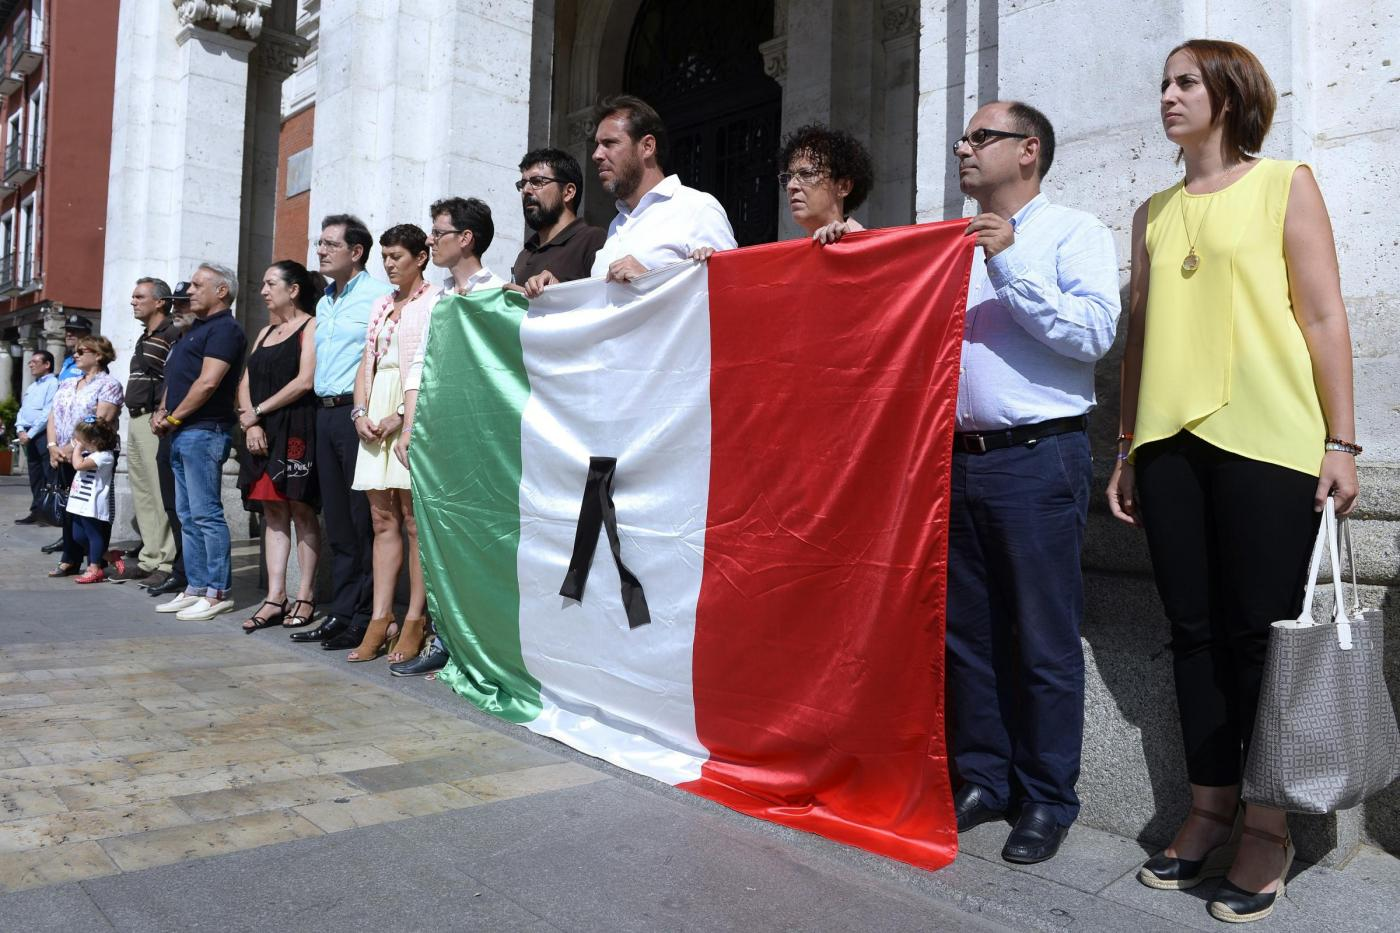 Minute of silence at Valladolid's main square in memory of the victims of the earthquake in Italy